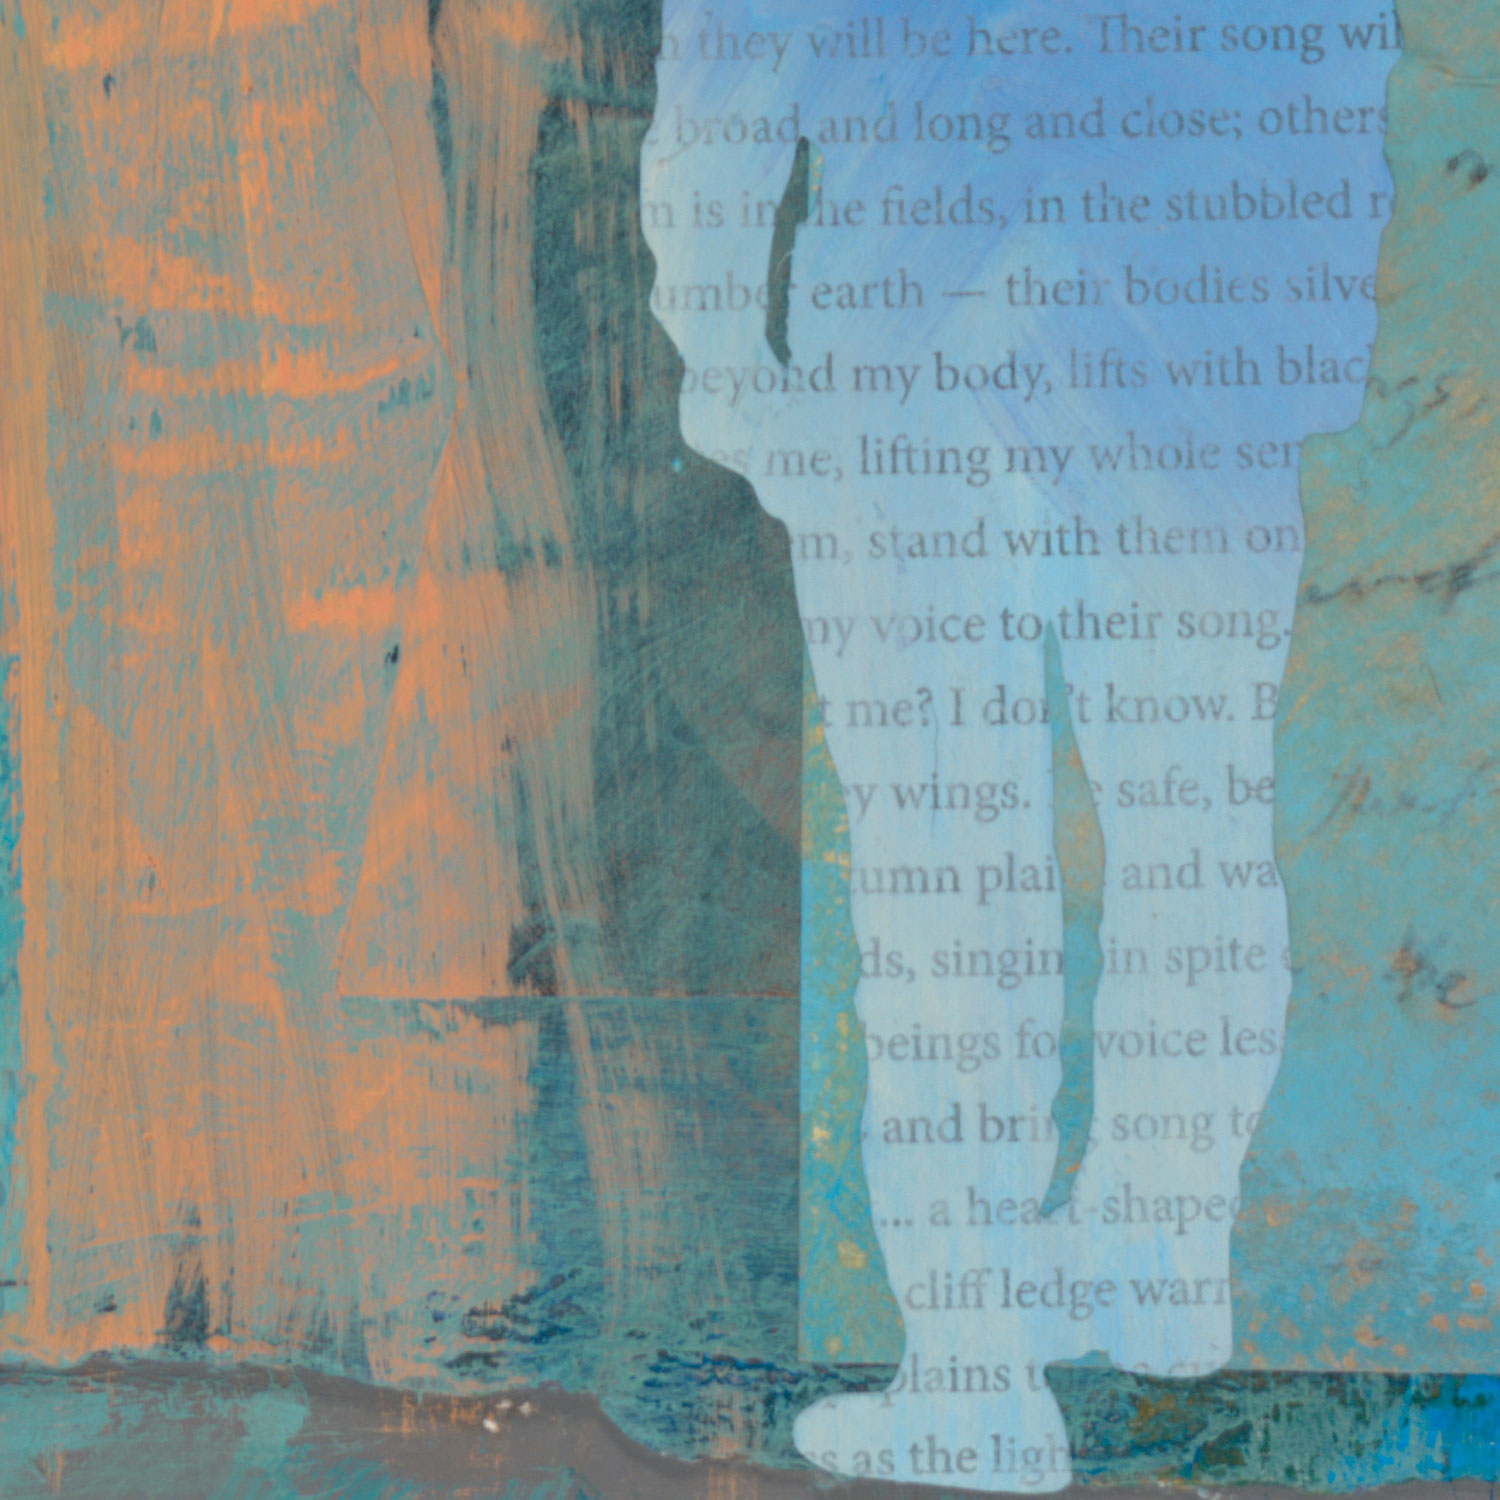 one of the figures is made of text against a sky blue background in the painting They Lift Me - contemporary mixed media landscape painting celebrating the sandhill cranes by New Mexico artist Dawn Chandler